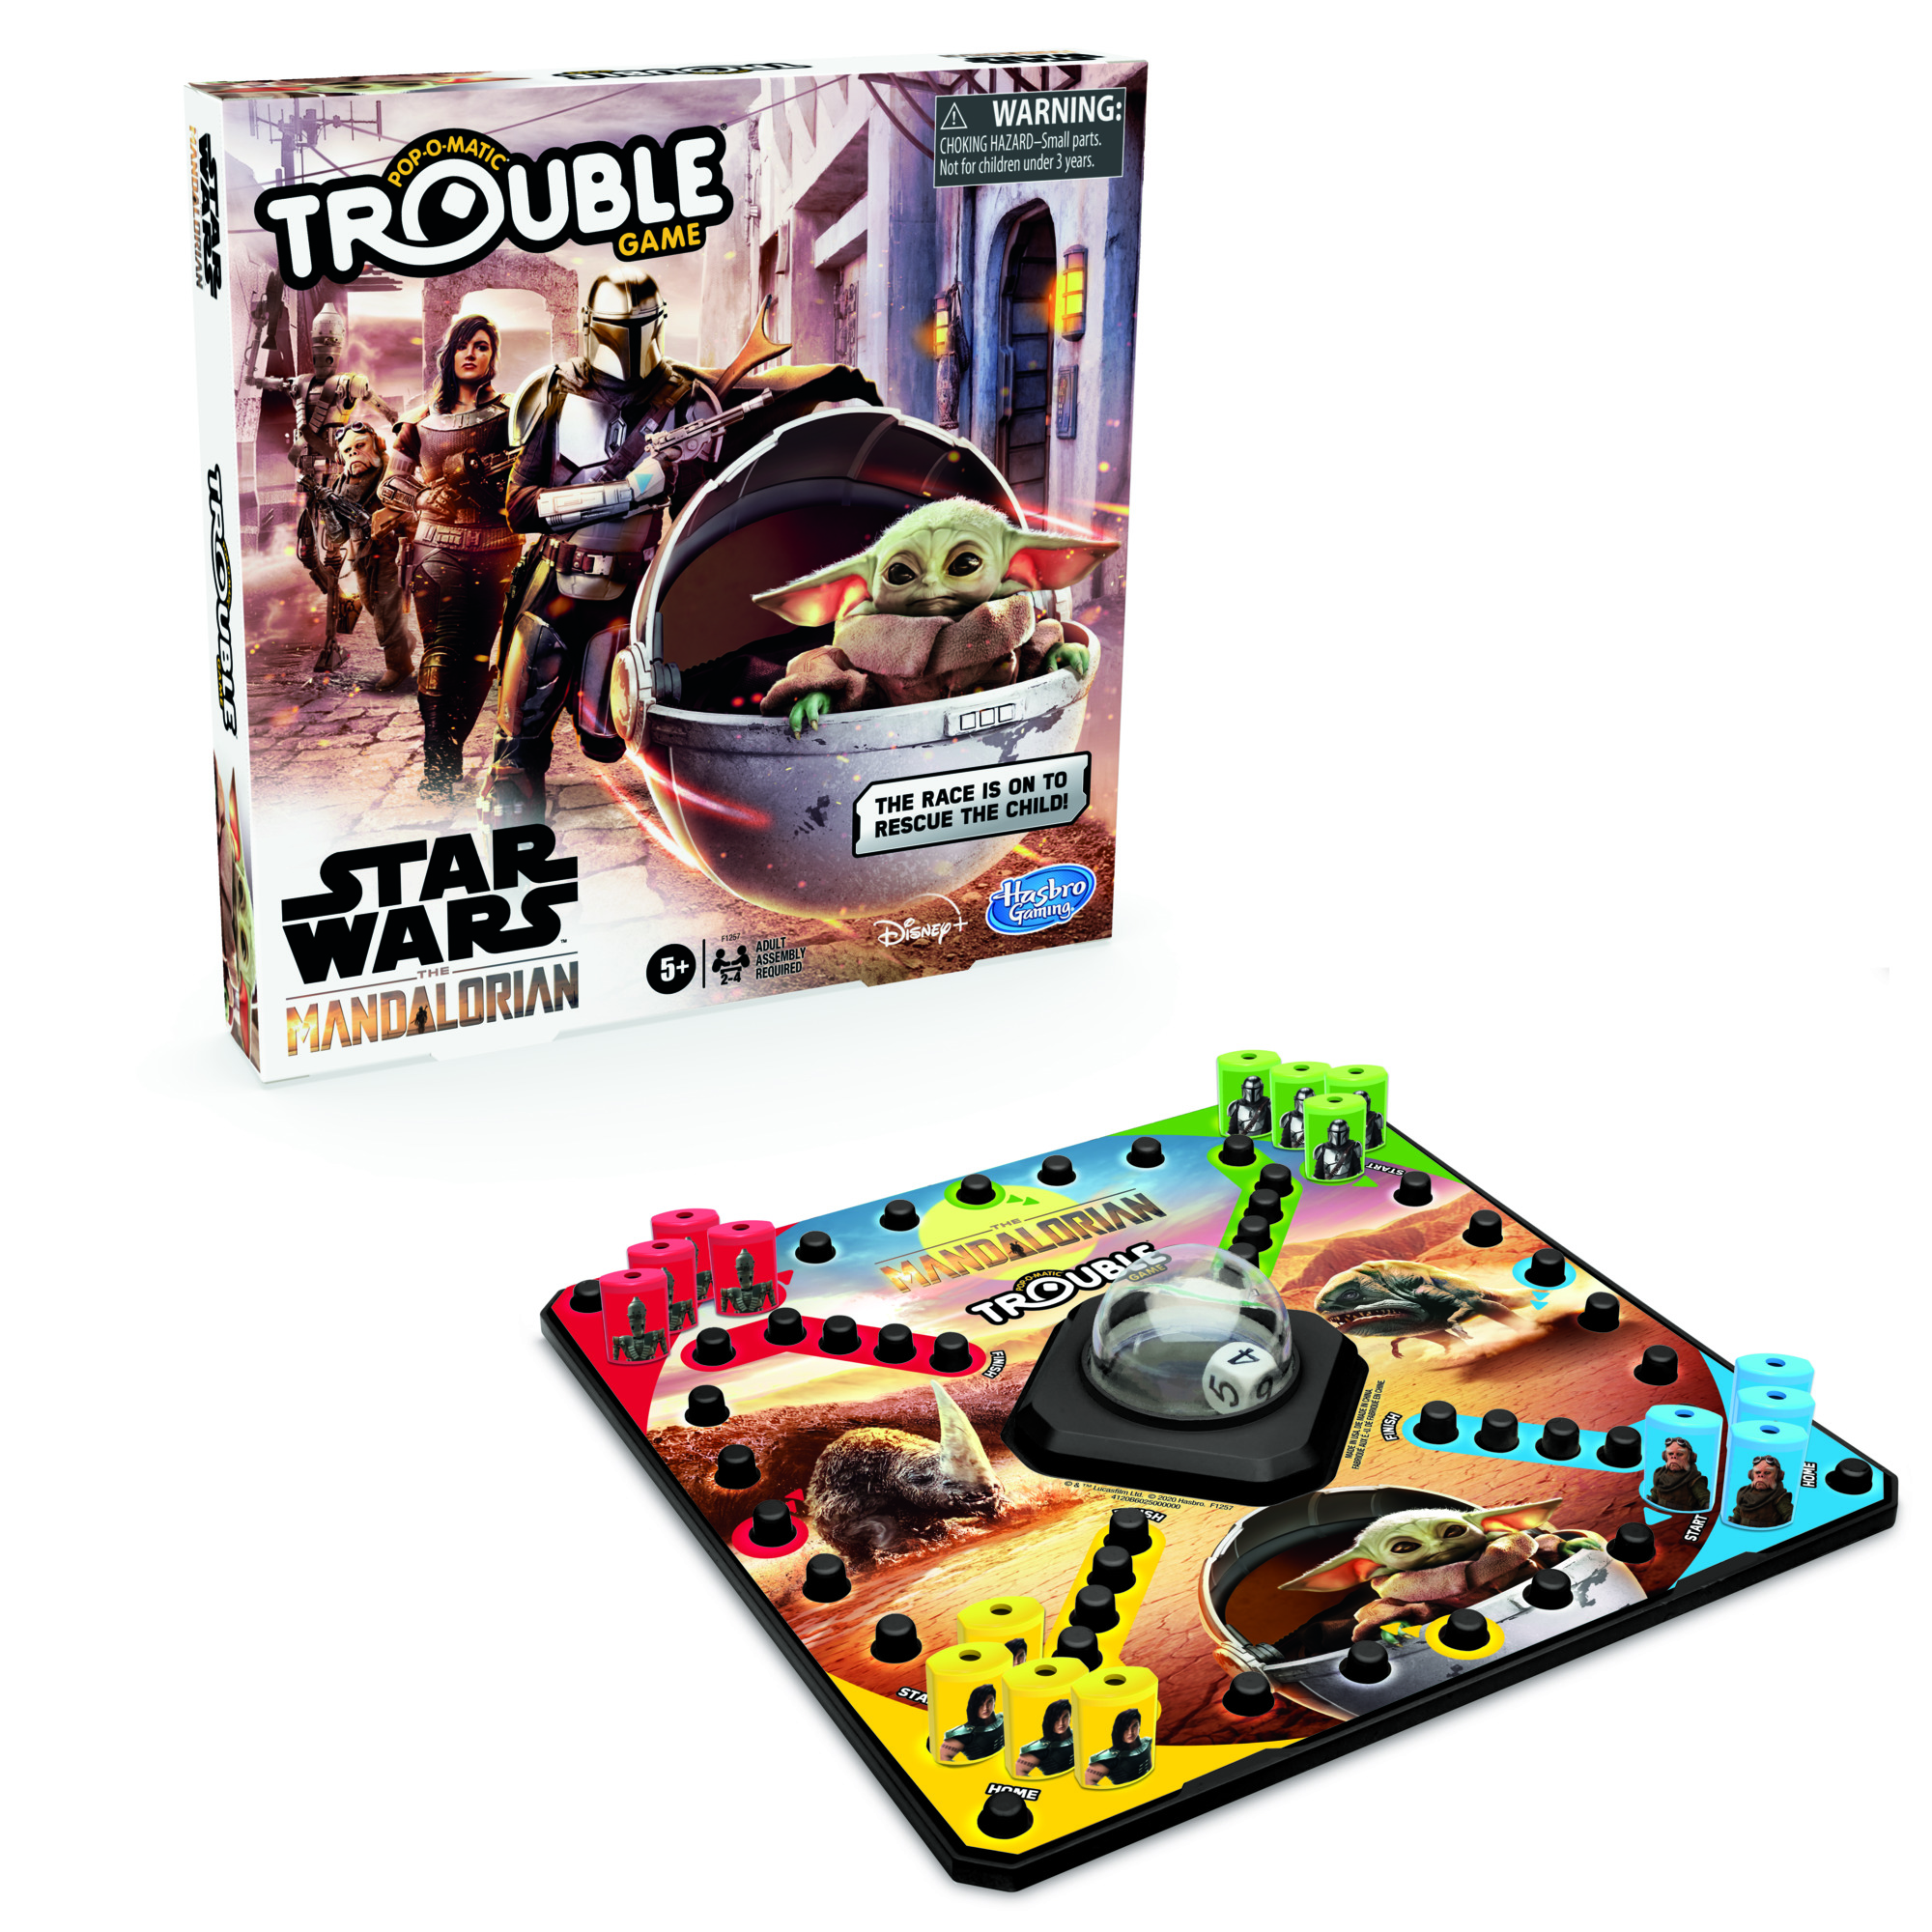 F12570000 Star Wars The Mandalorian Trouble Game 2